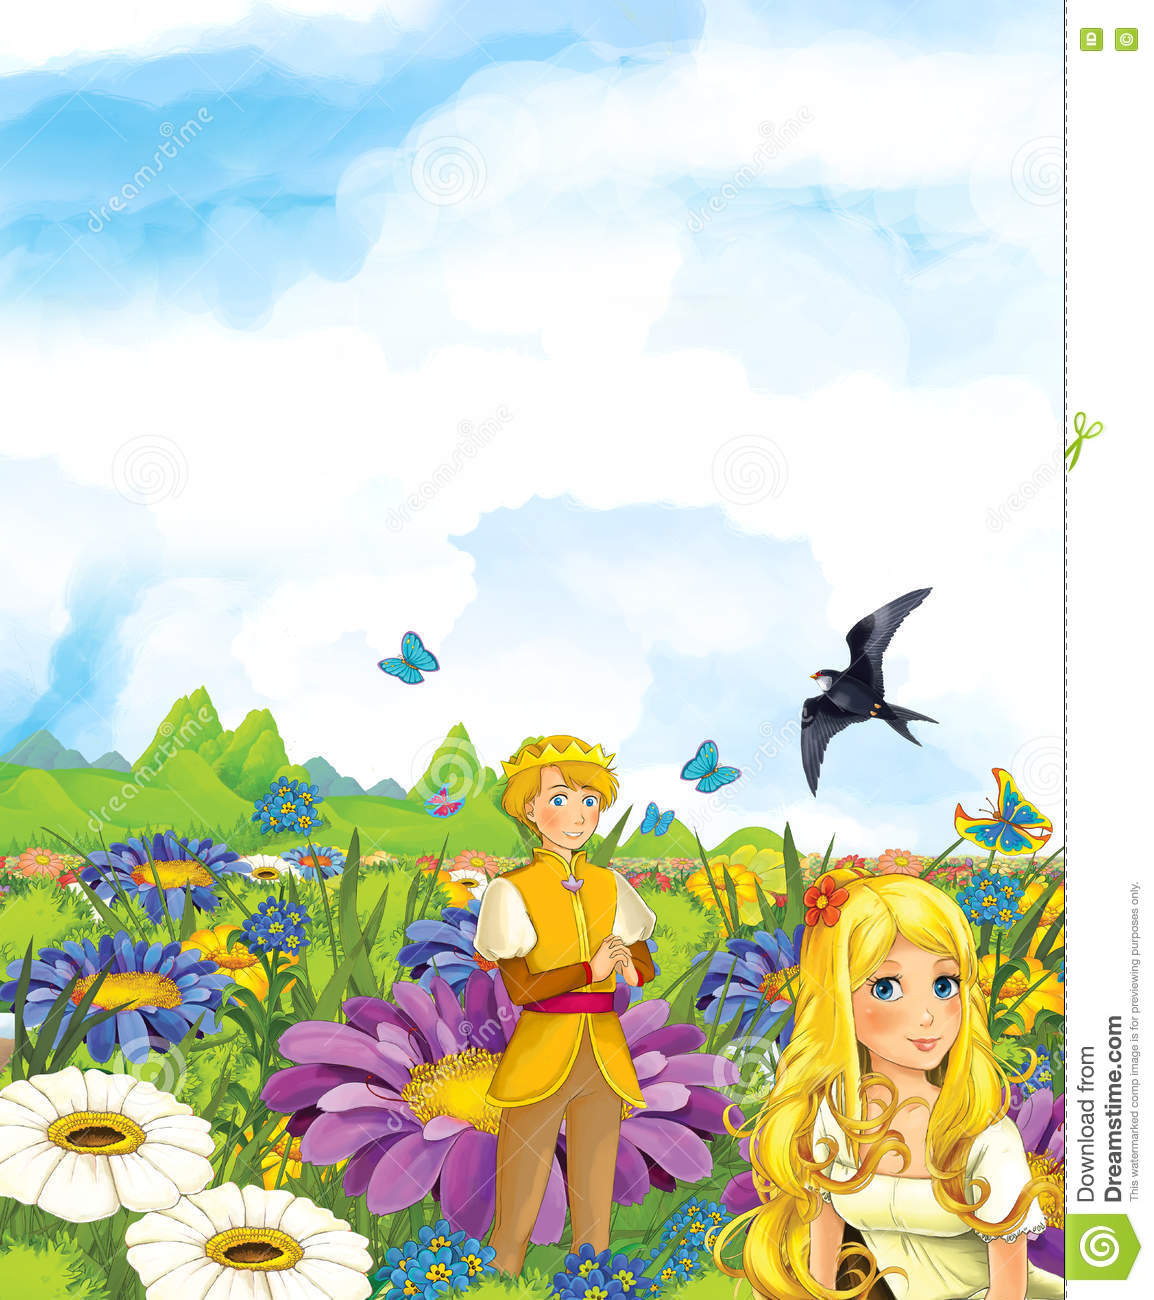 Cartoon Scene Of Fairy Prince And Princes Or King And Queen And A.